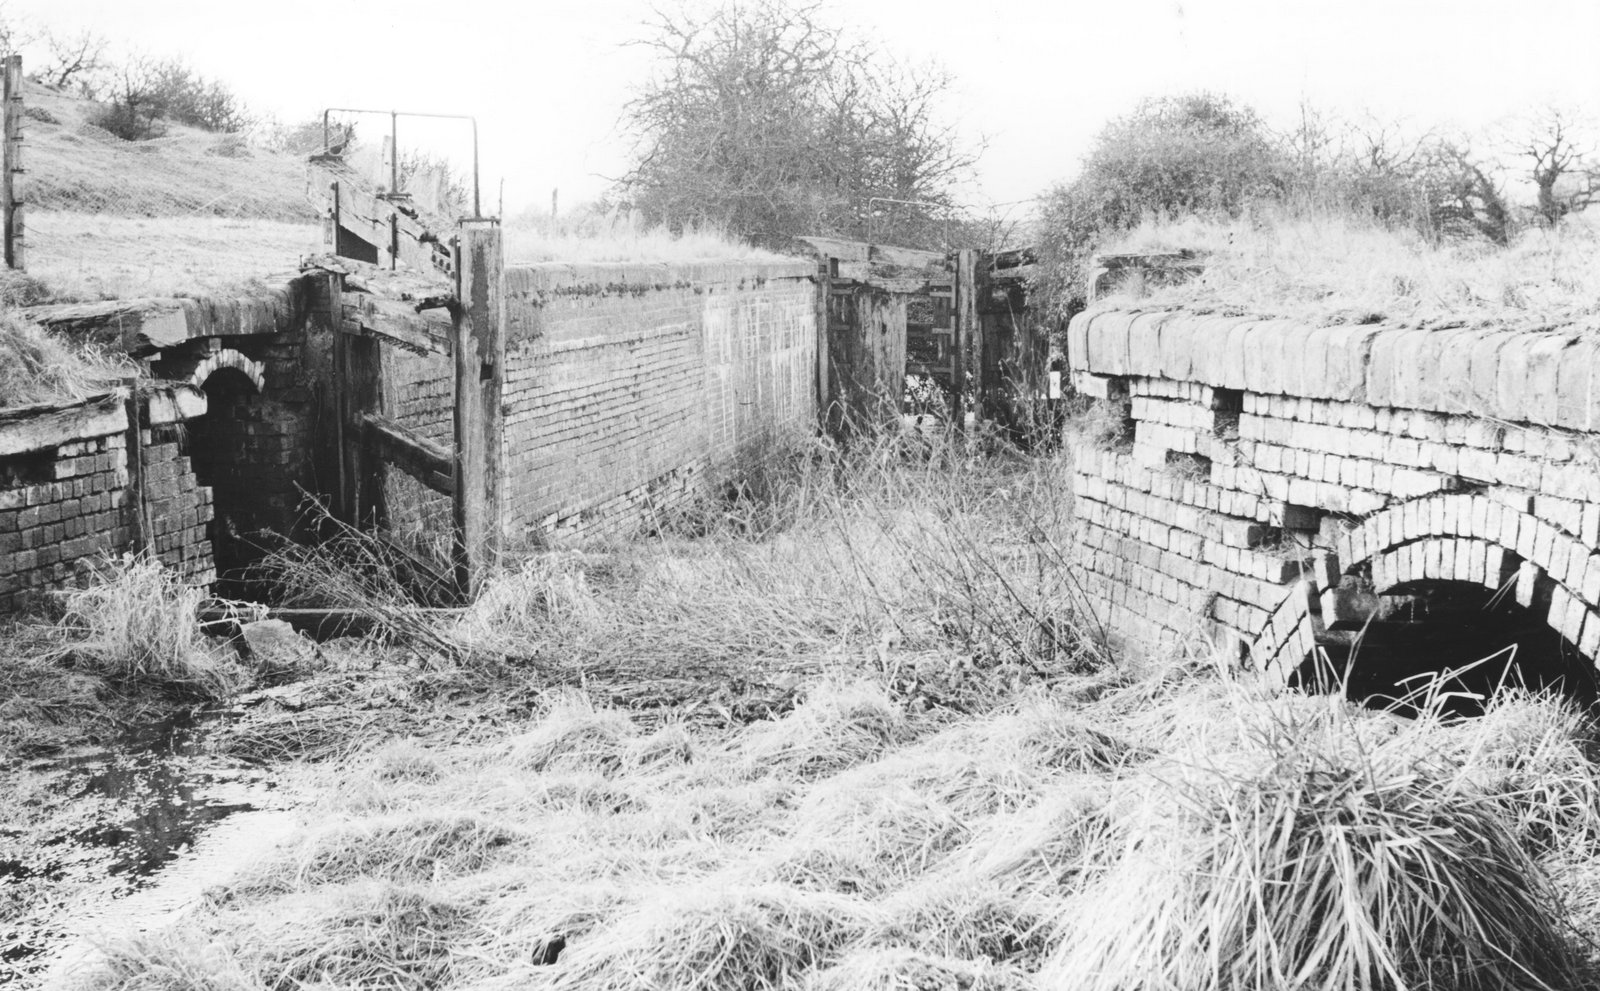 2. Act of Abandonment - Ladywood Bottom Lock 1965